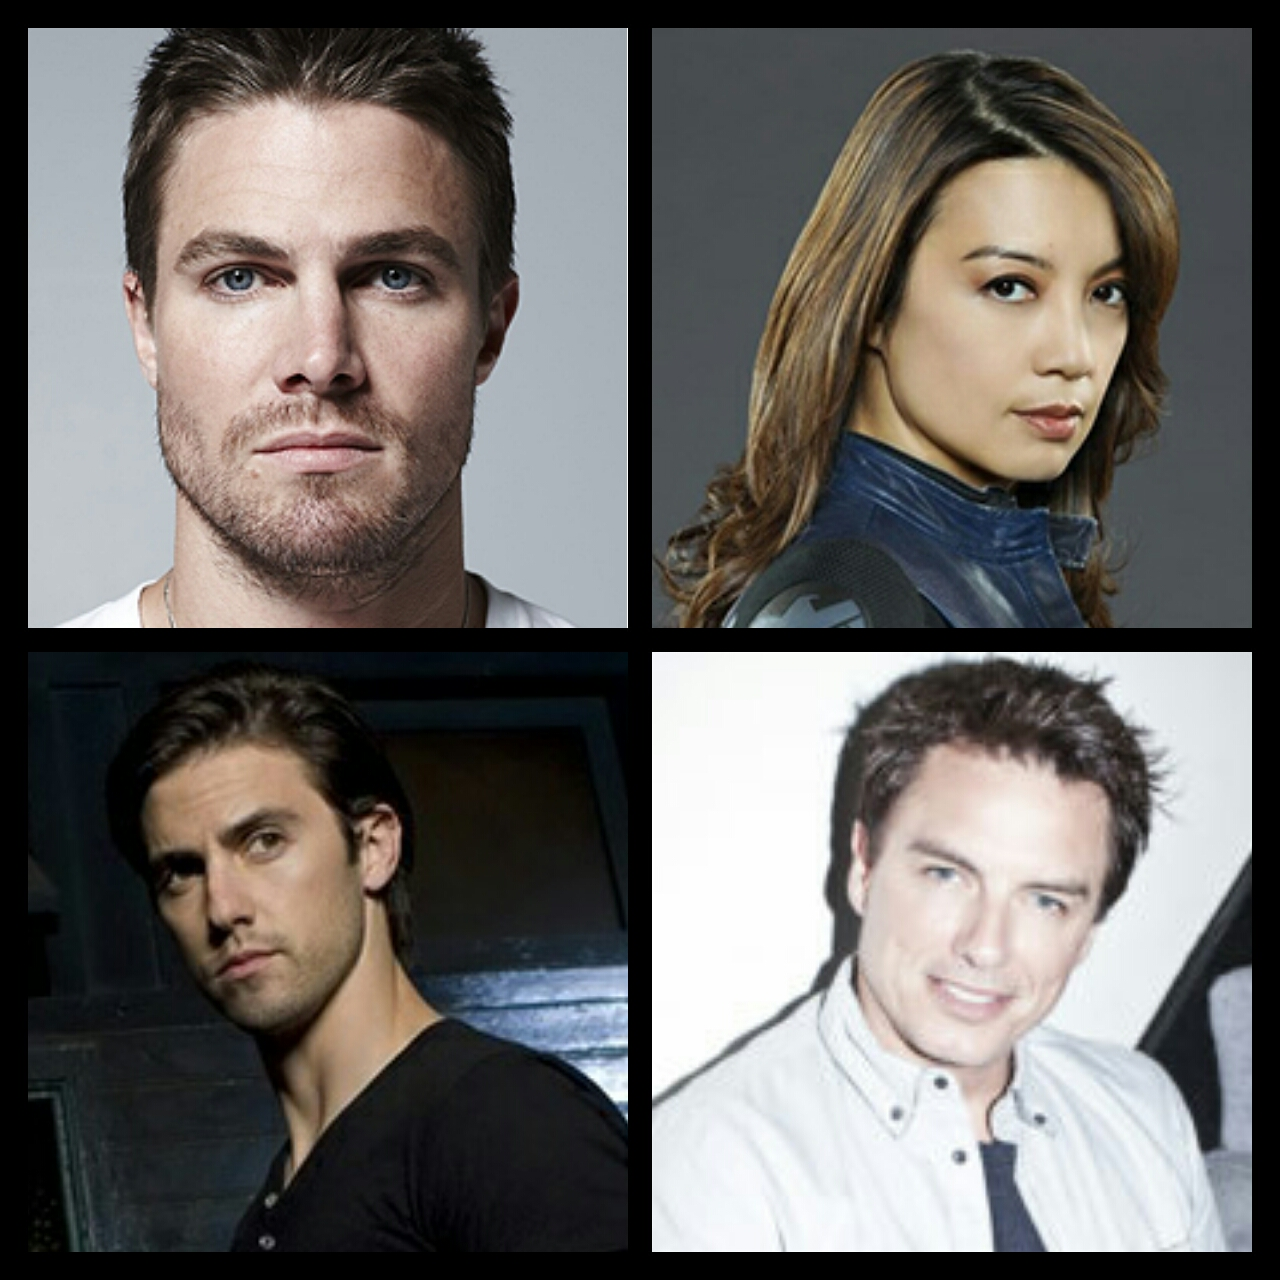 Fan Fest, Arrow, Agents of Shield, This is Us, Stephen Amell, Ming-Na Wen, Milo Ventimiglia, John Barrowman